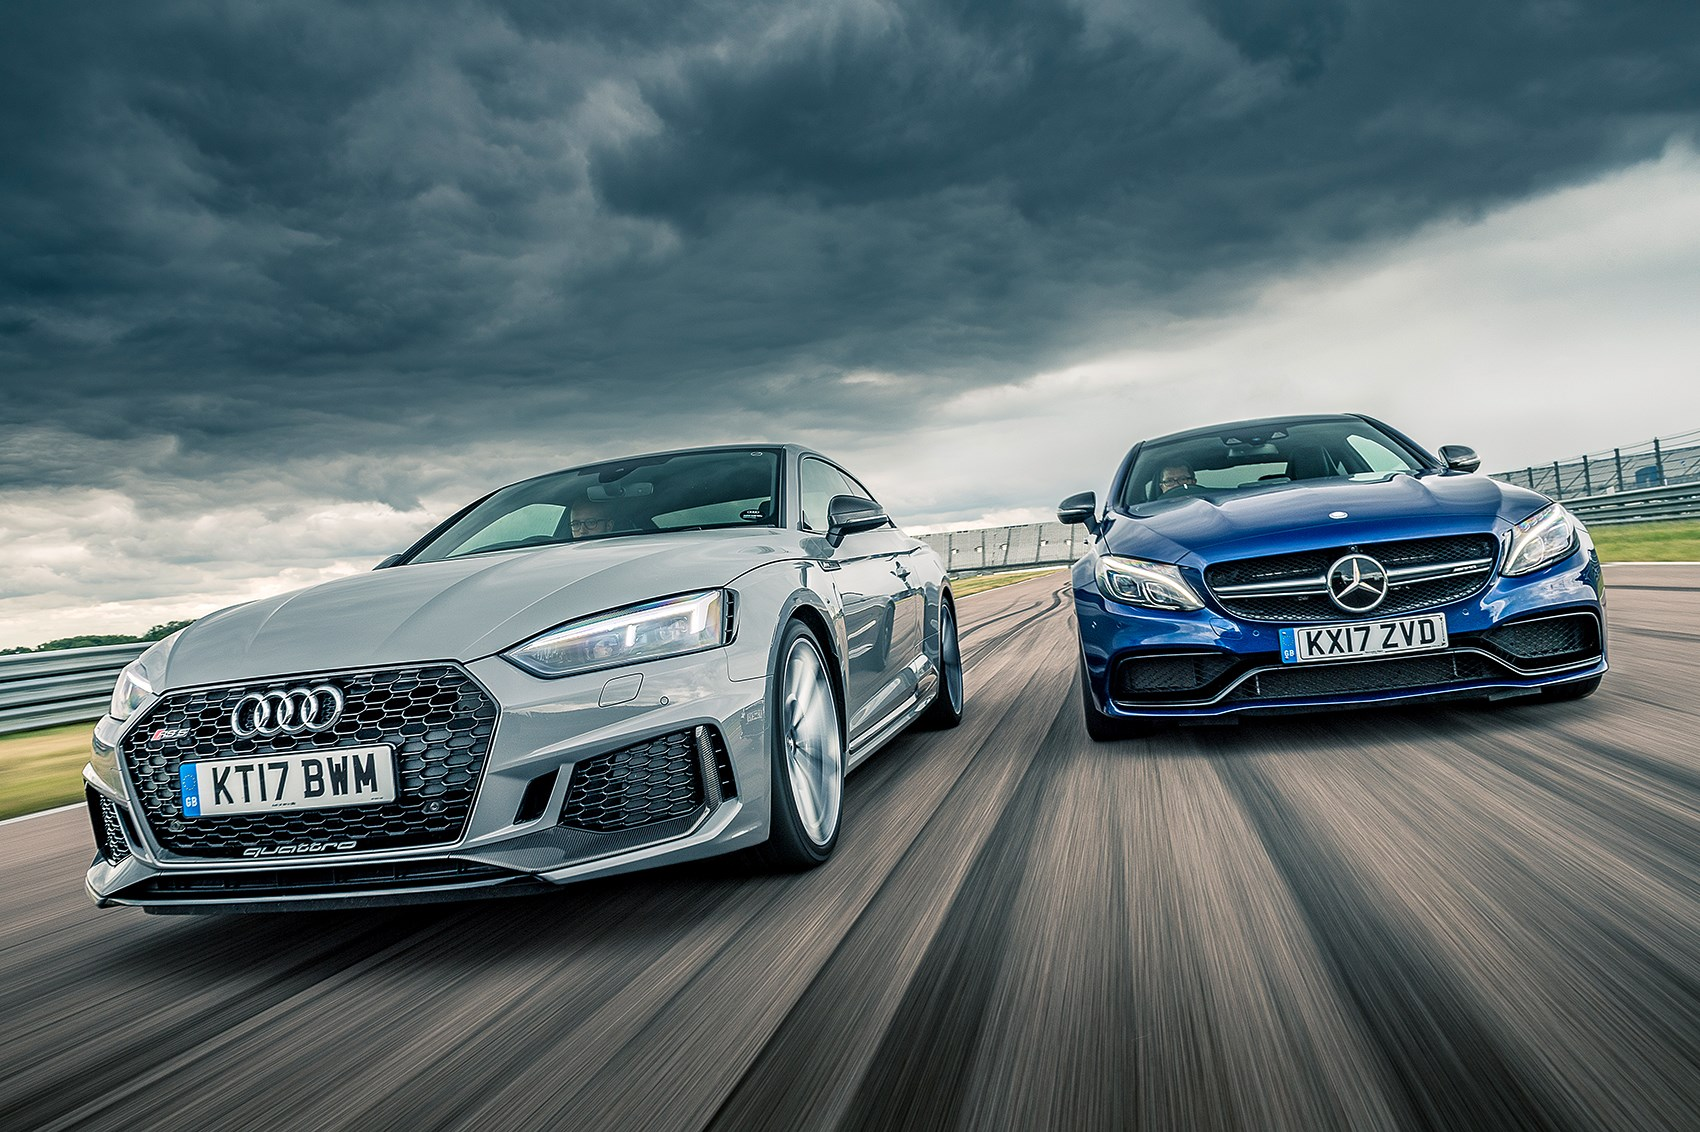 Audi Vs Mercedes >> Audi Rs5 Vs Mercedes Amg C63 S Twin Test Review Car Magazine